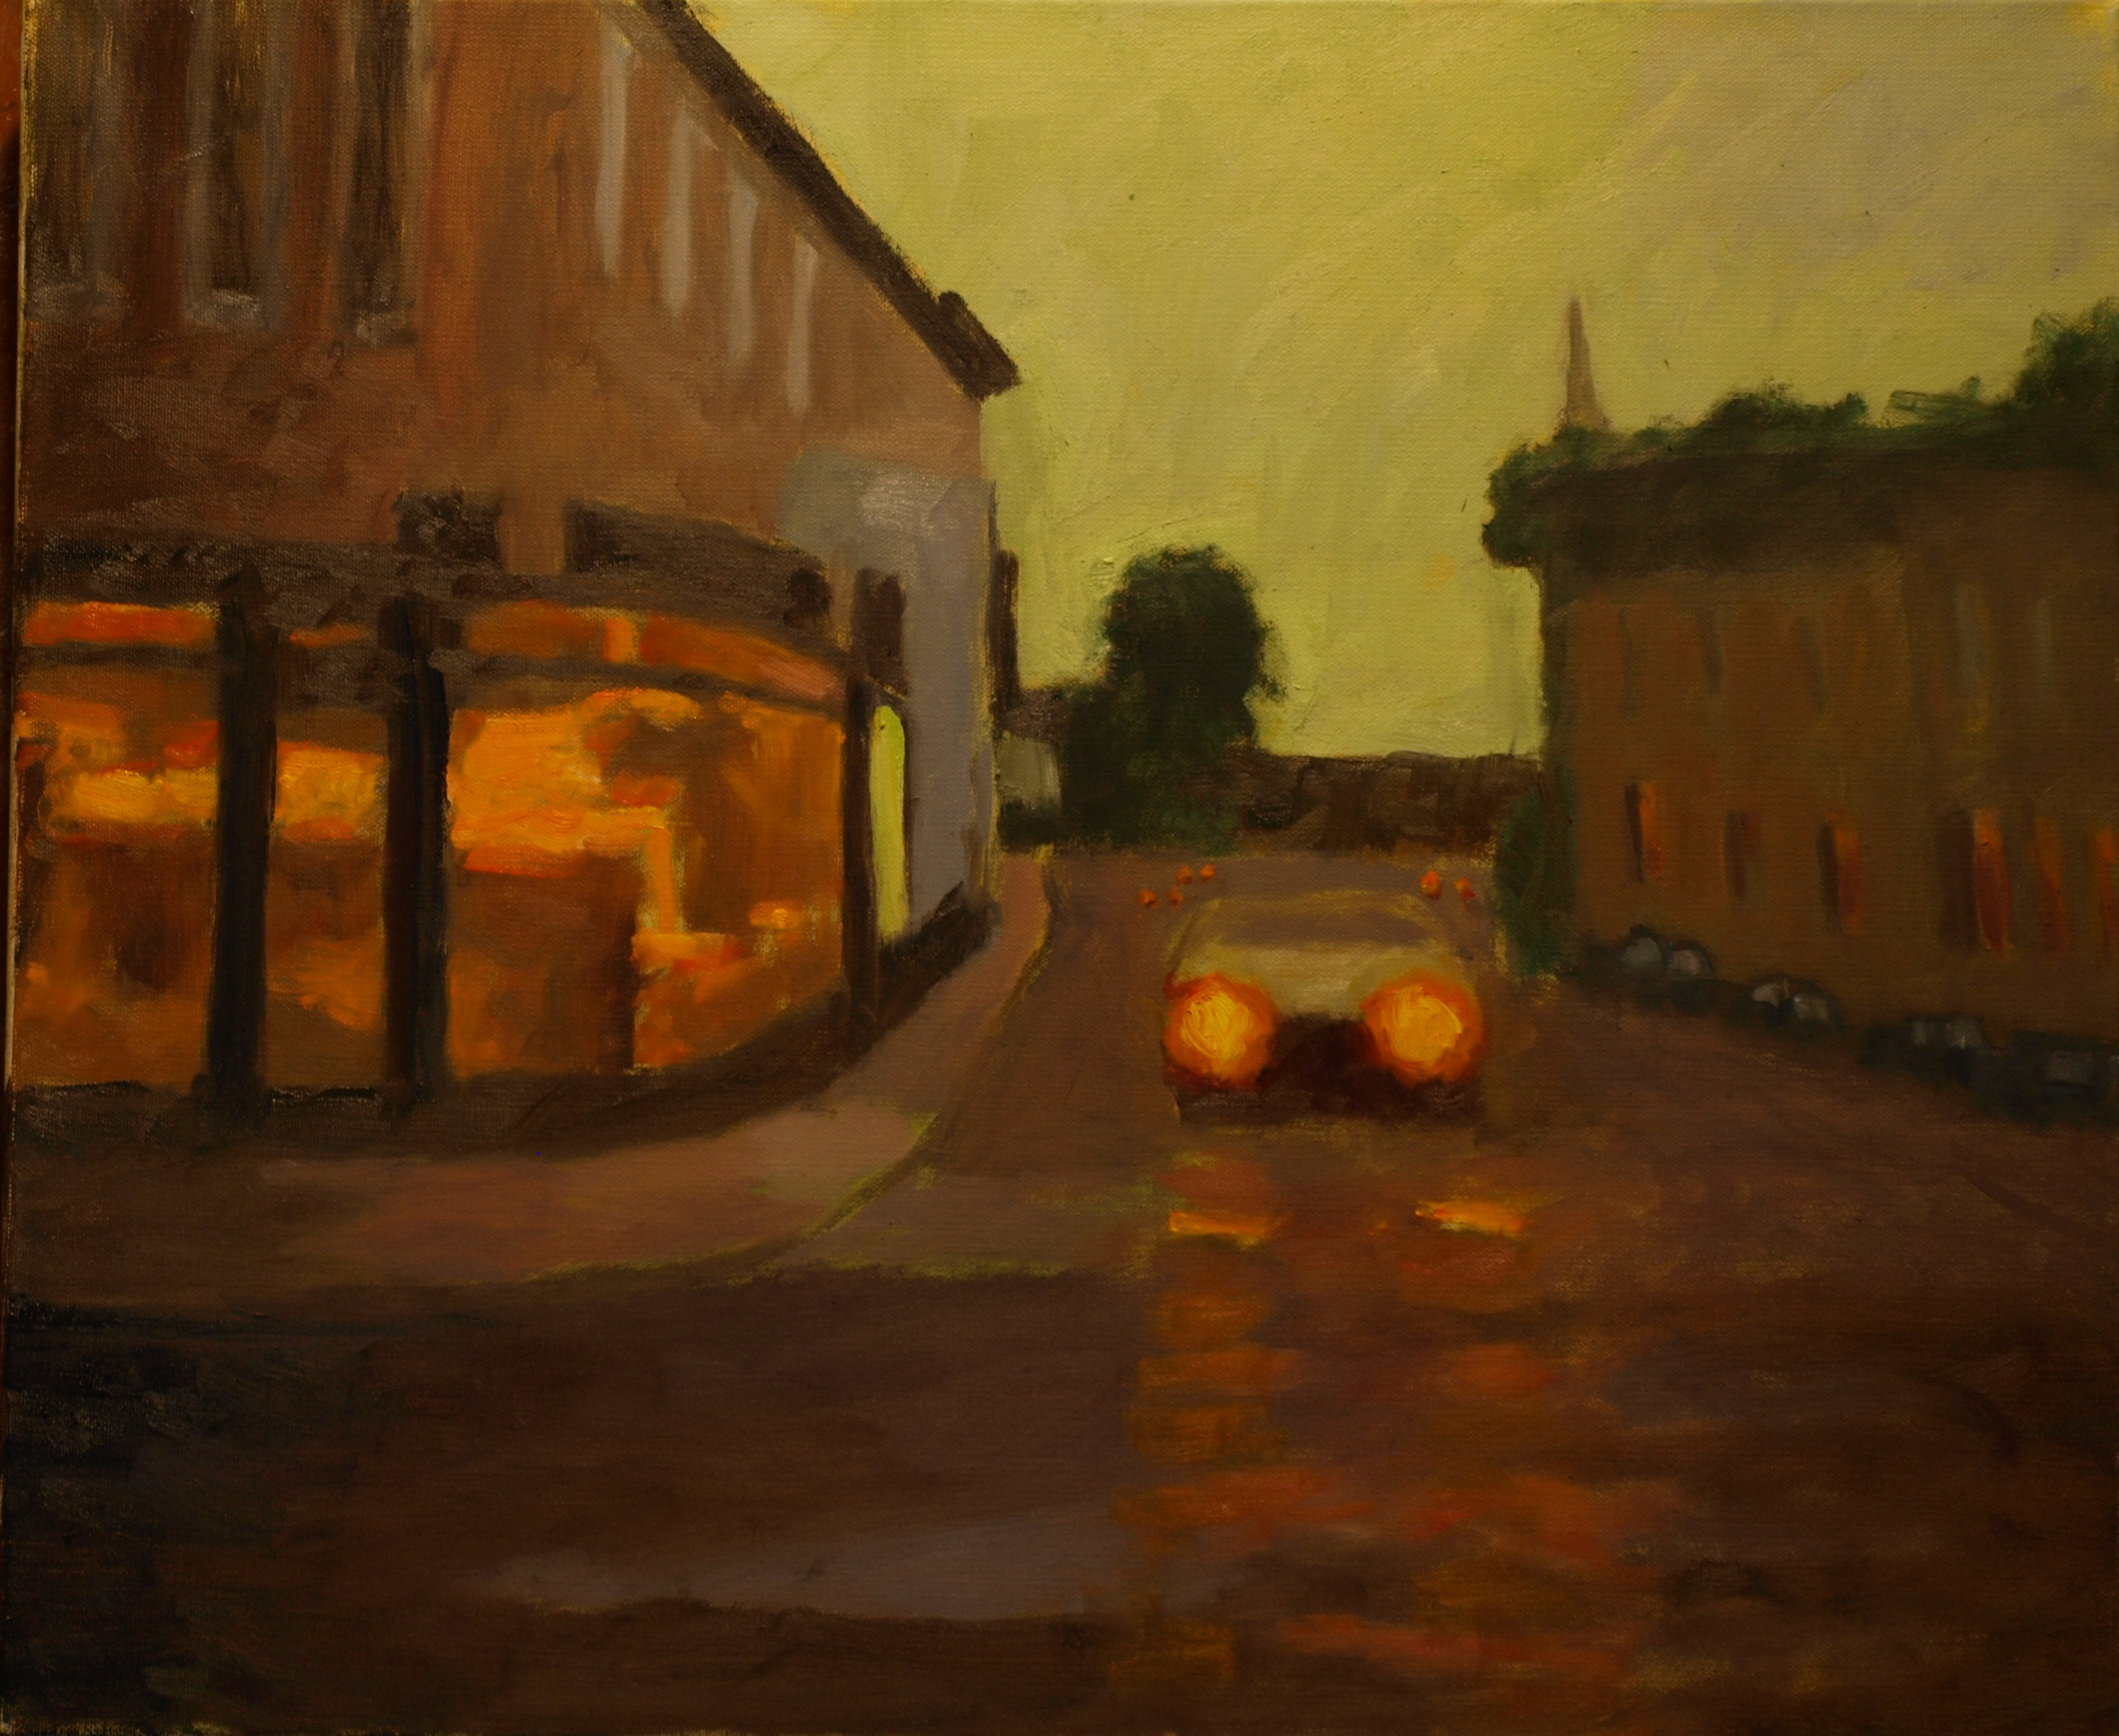 Mystic Evening, Oil on Canvas, 20 x 24 Inches, by Richard Stalter, $700